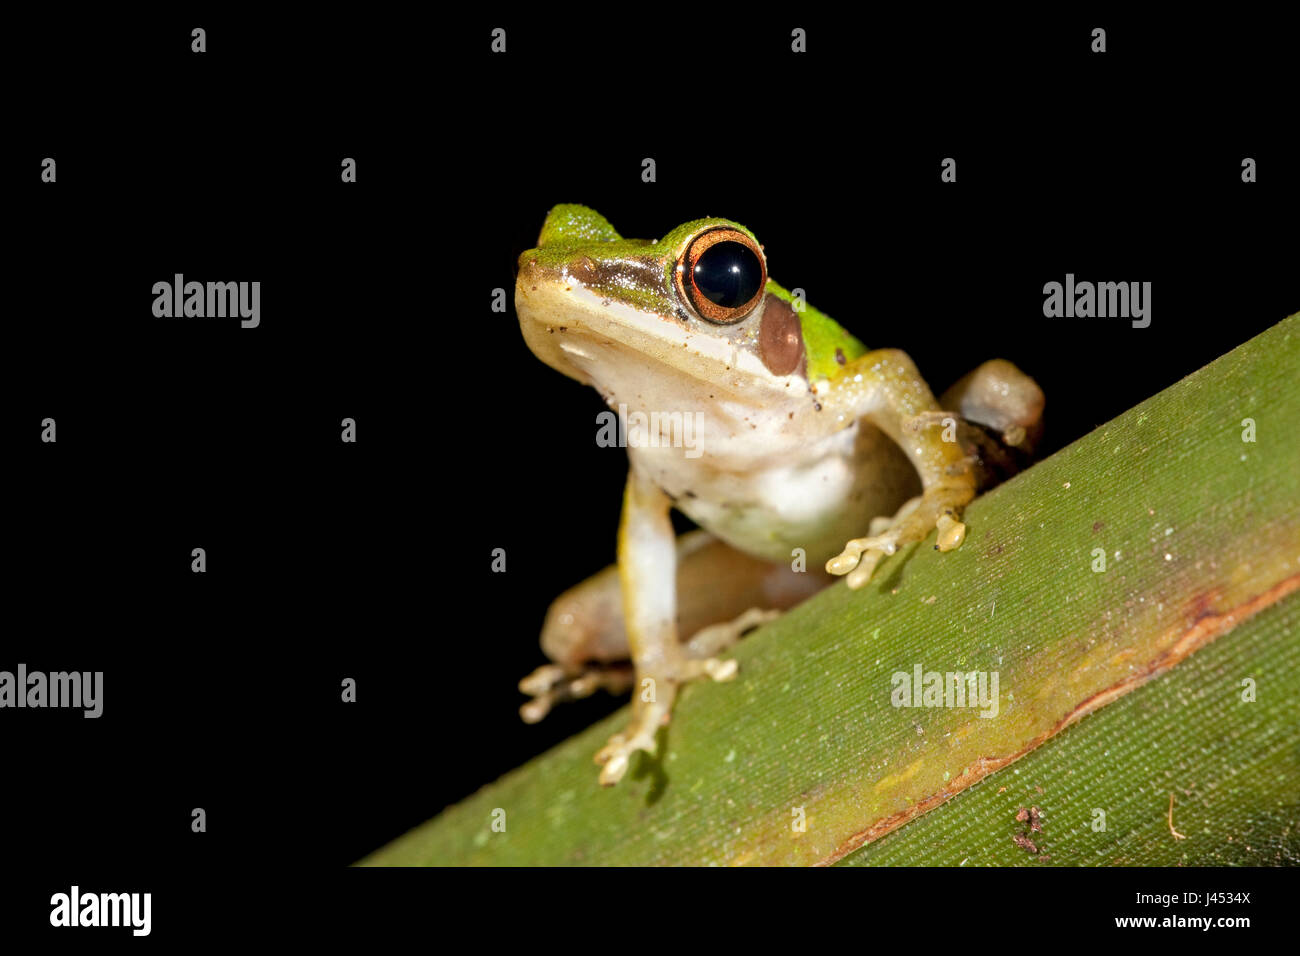 photo of a white-lipped frog on a green leaf - Stock Image